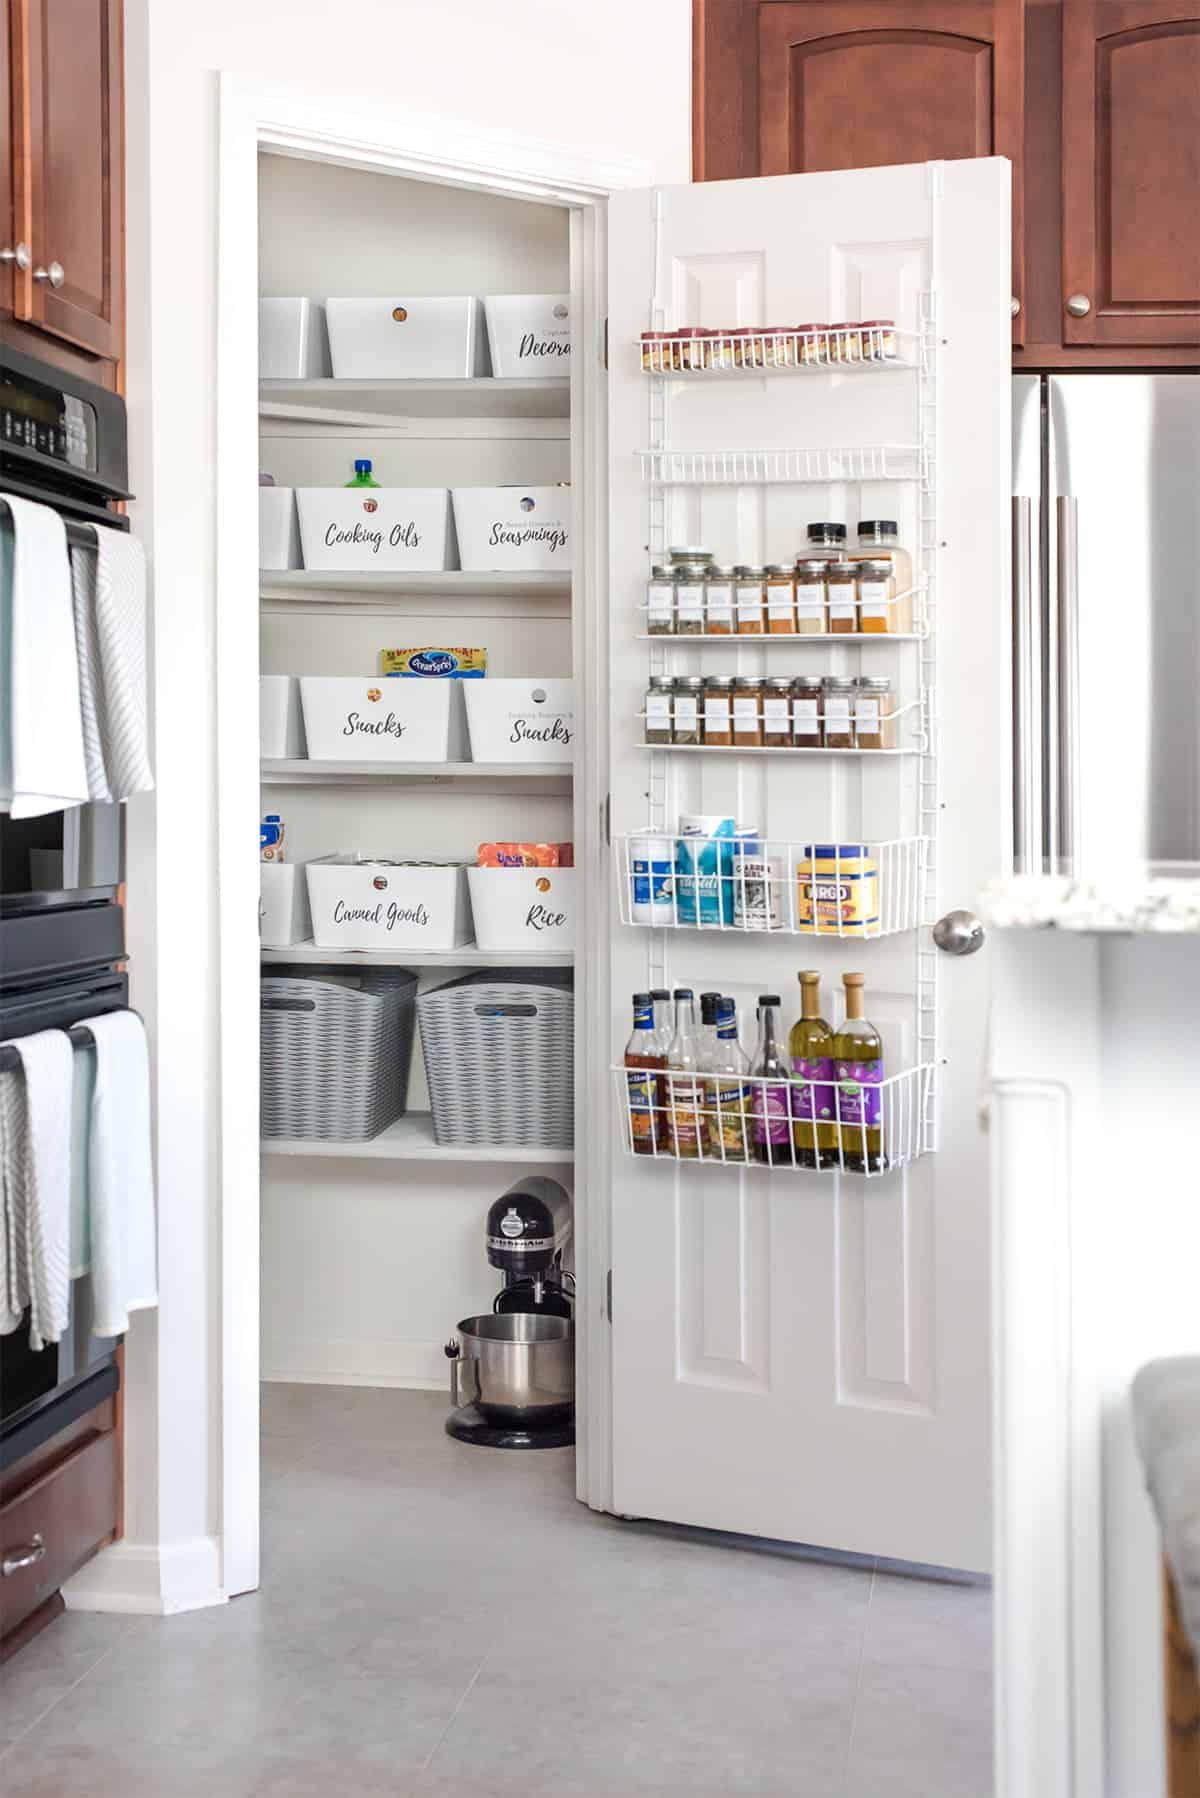 Full size shot of organized pantry. Over-the-door storage rack for spices. Labeled uniform bins on shelves.